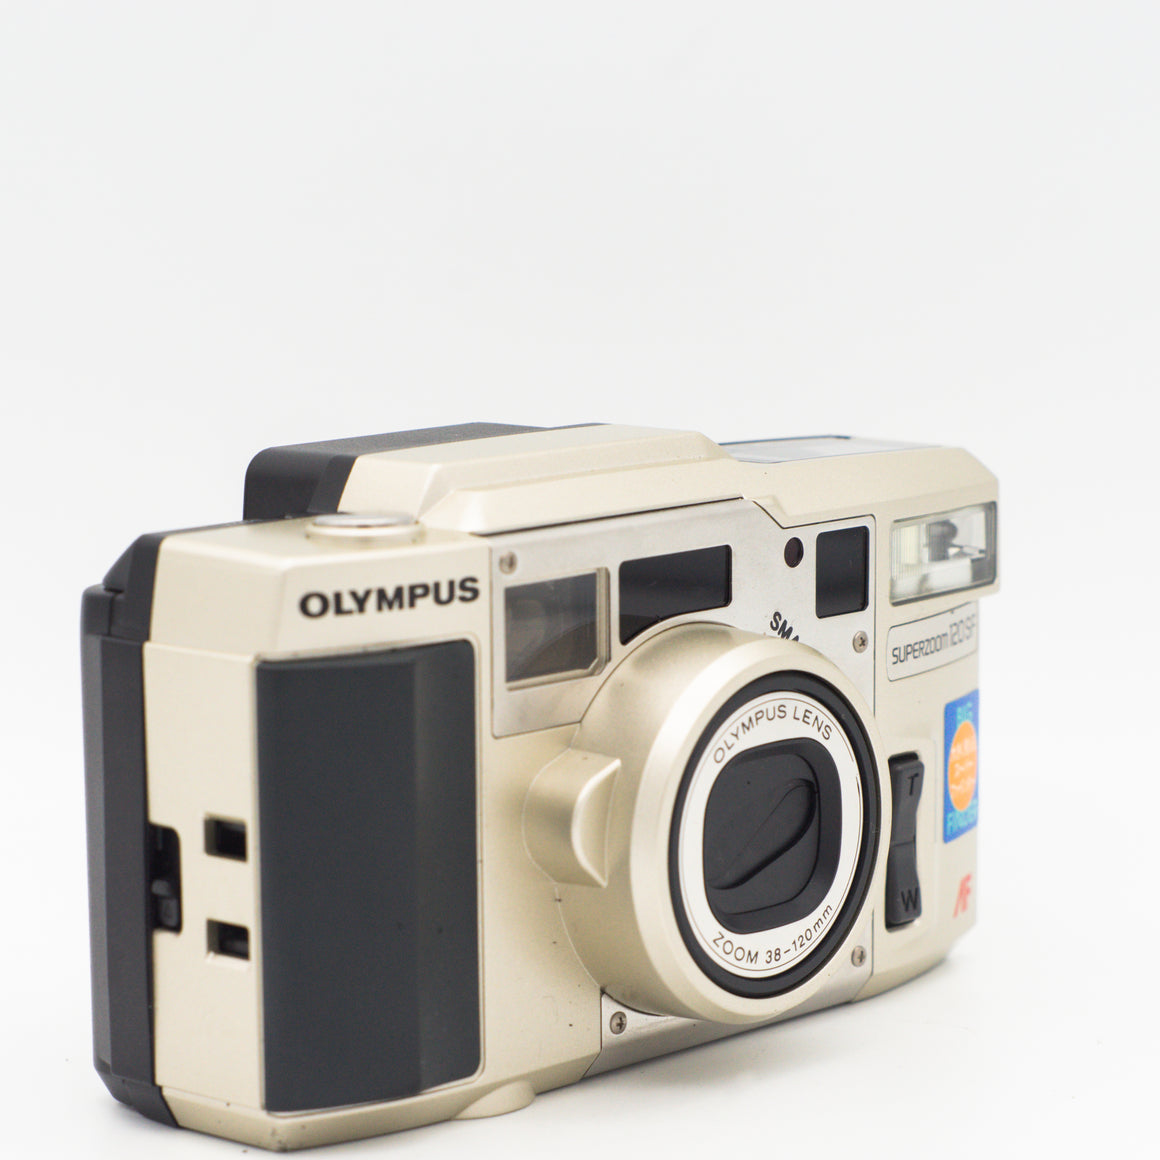 Olympus Superzoom 120SF 38-120mm Point and Shoot Camera